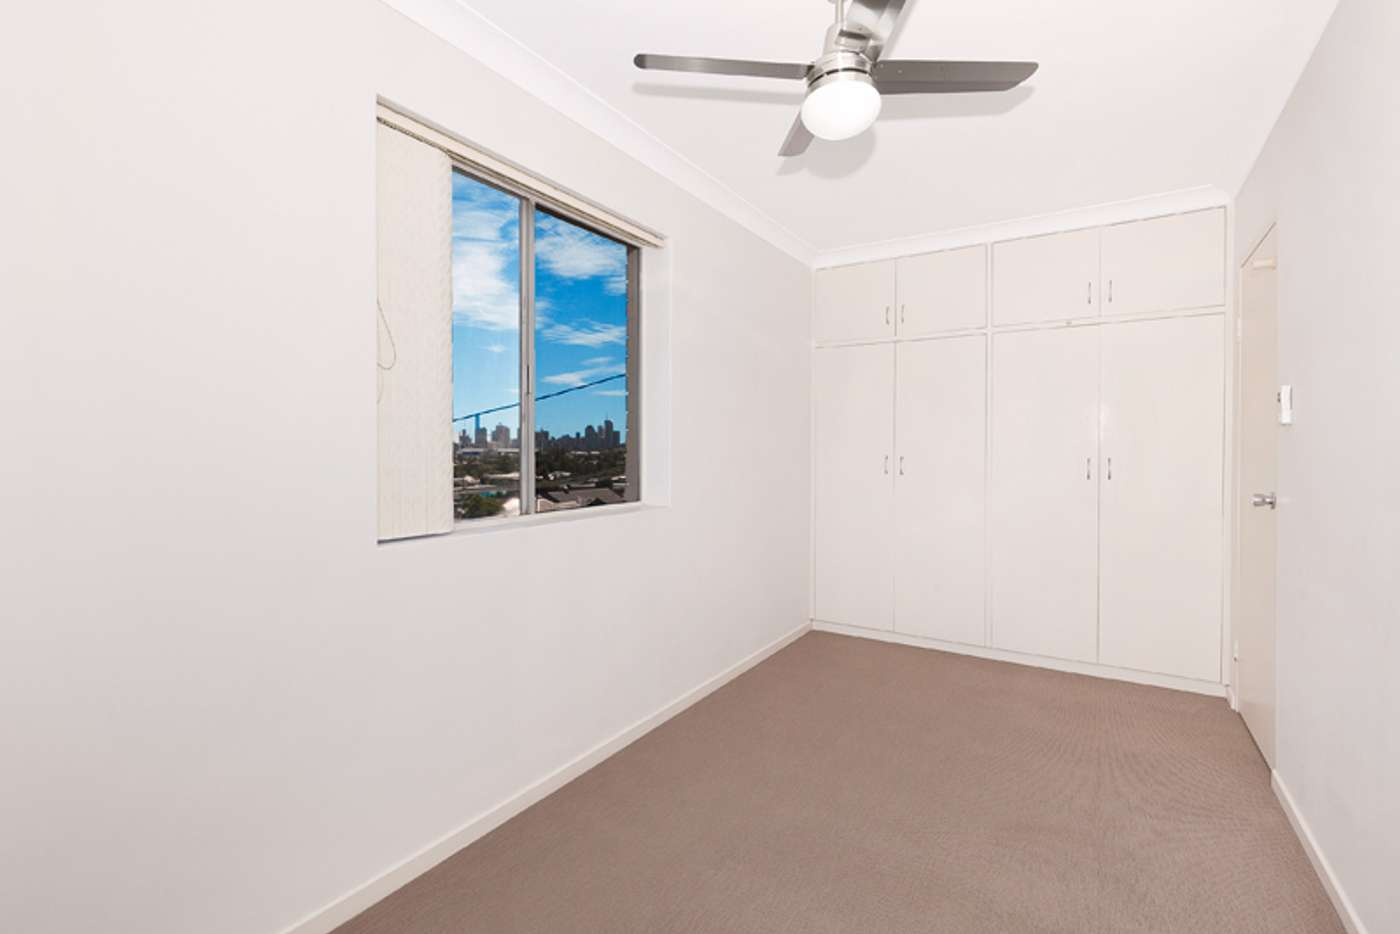 Sixth view of Homely unit listing, 5/16 Rialto Street, Coorparoo QLD 4151